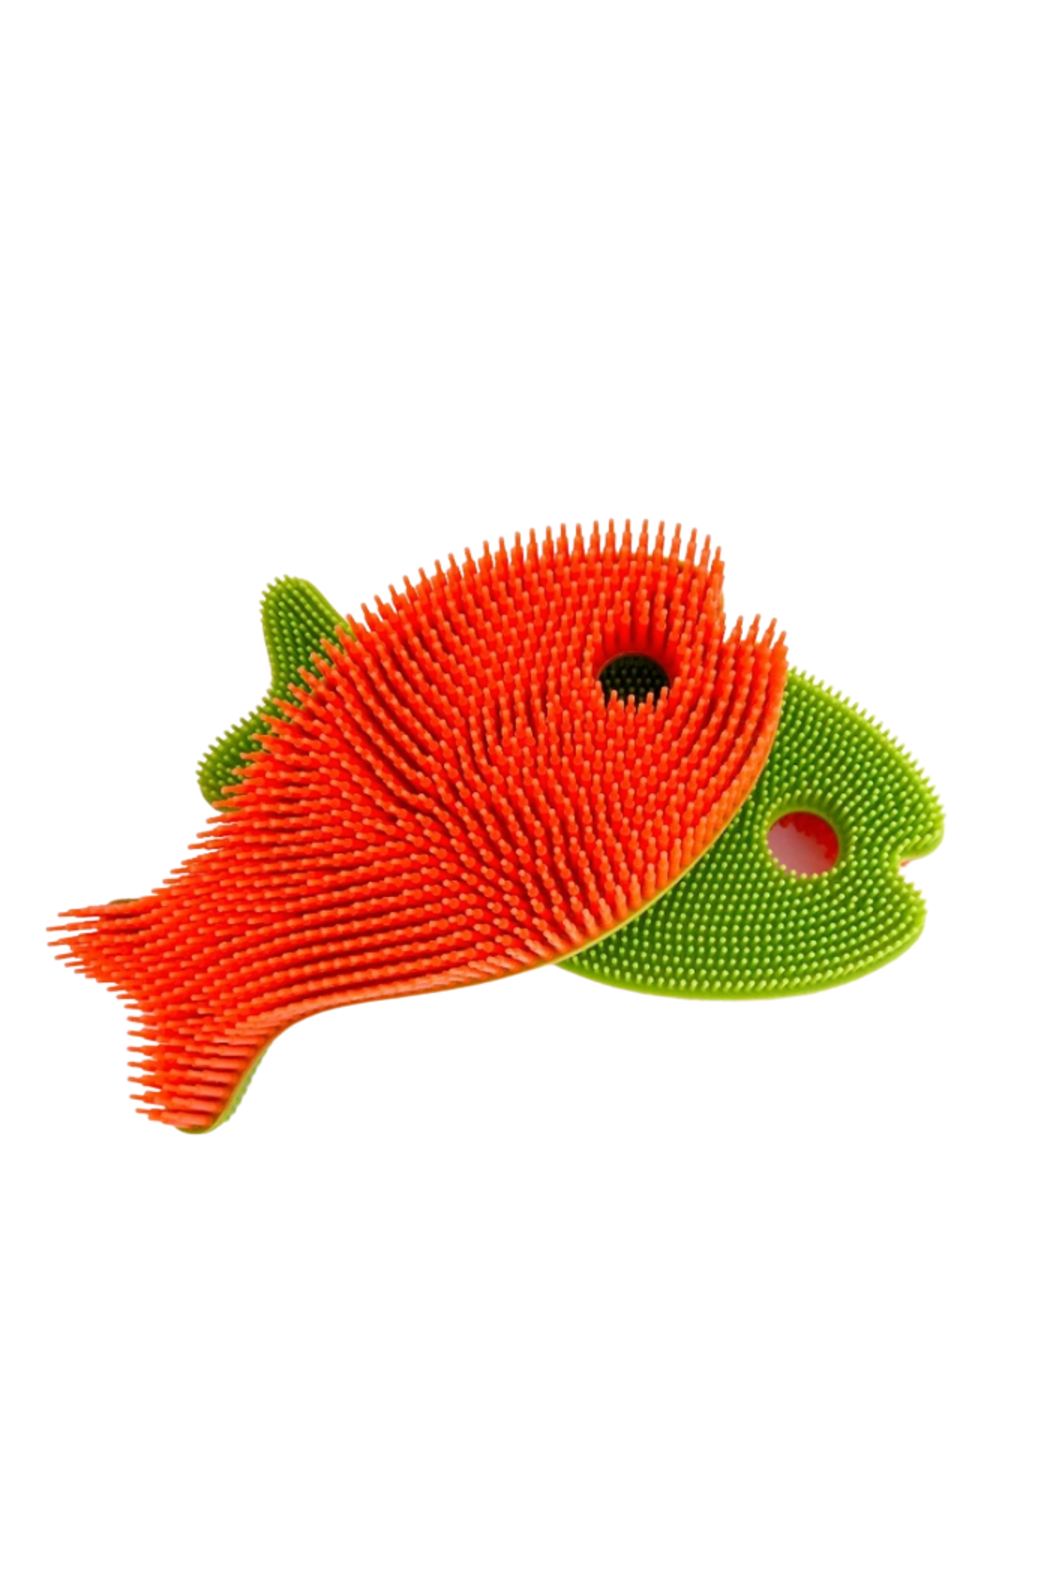 New People Fish Squigee Brush - Multiple Colors - Main Image